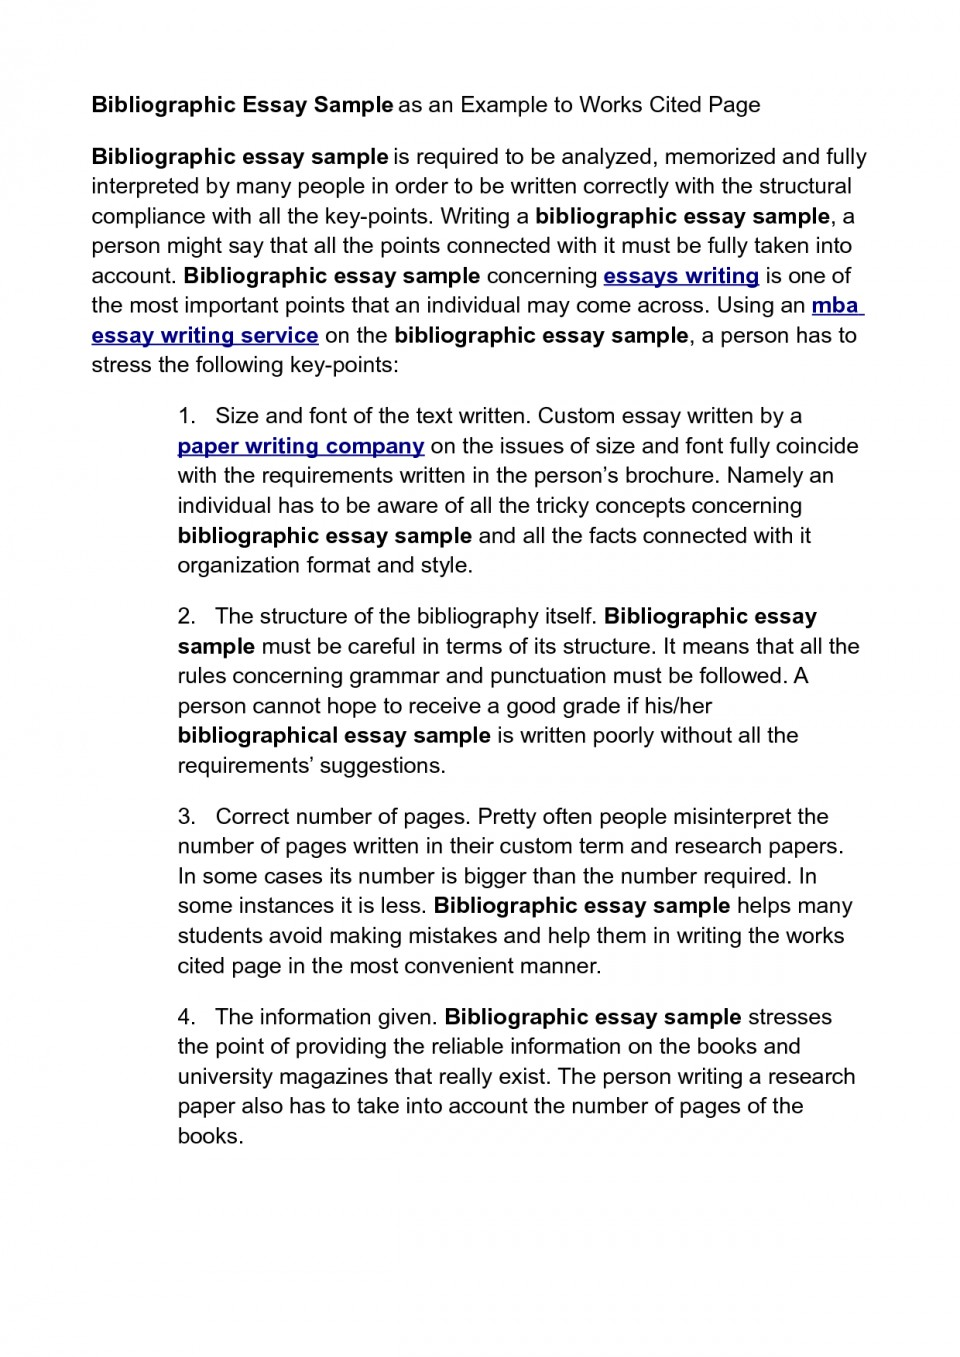 018 How To Cite An Essay Example Sample Persuasive With Works Cited Of Mla L Archaicawful In A Book 8th Edition 960